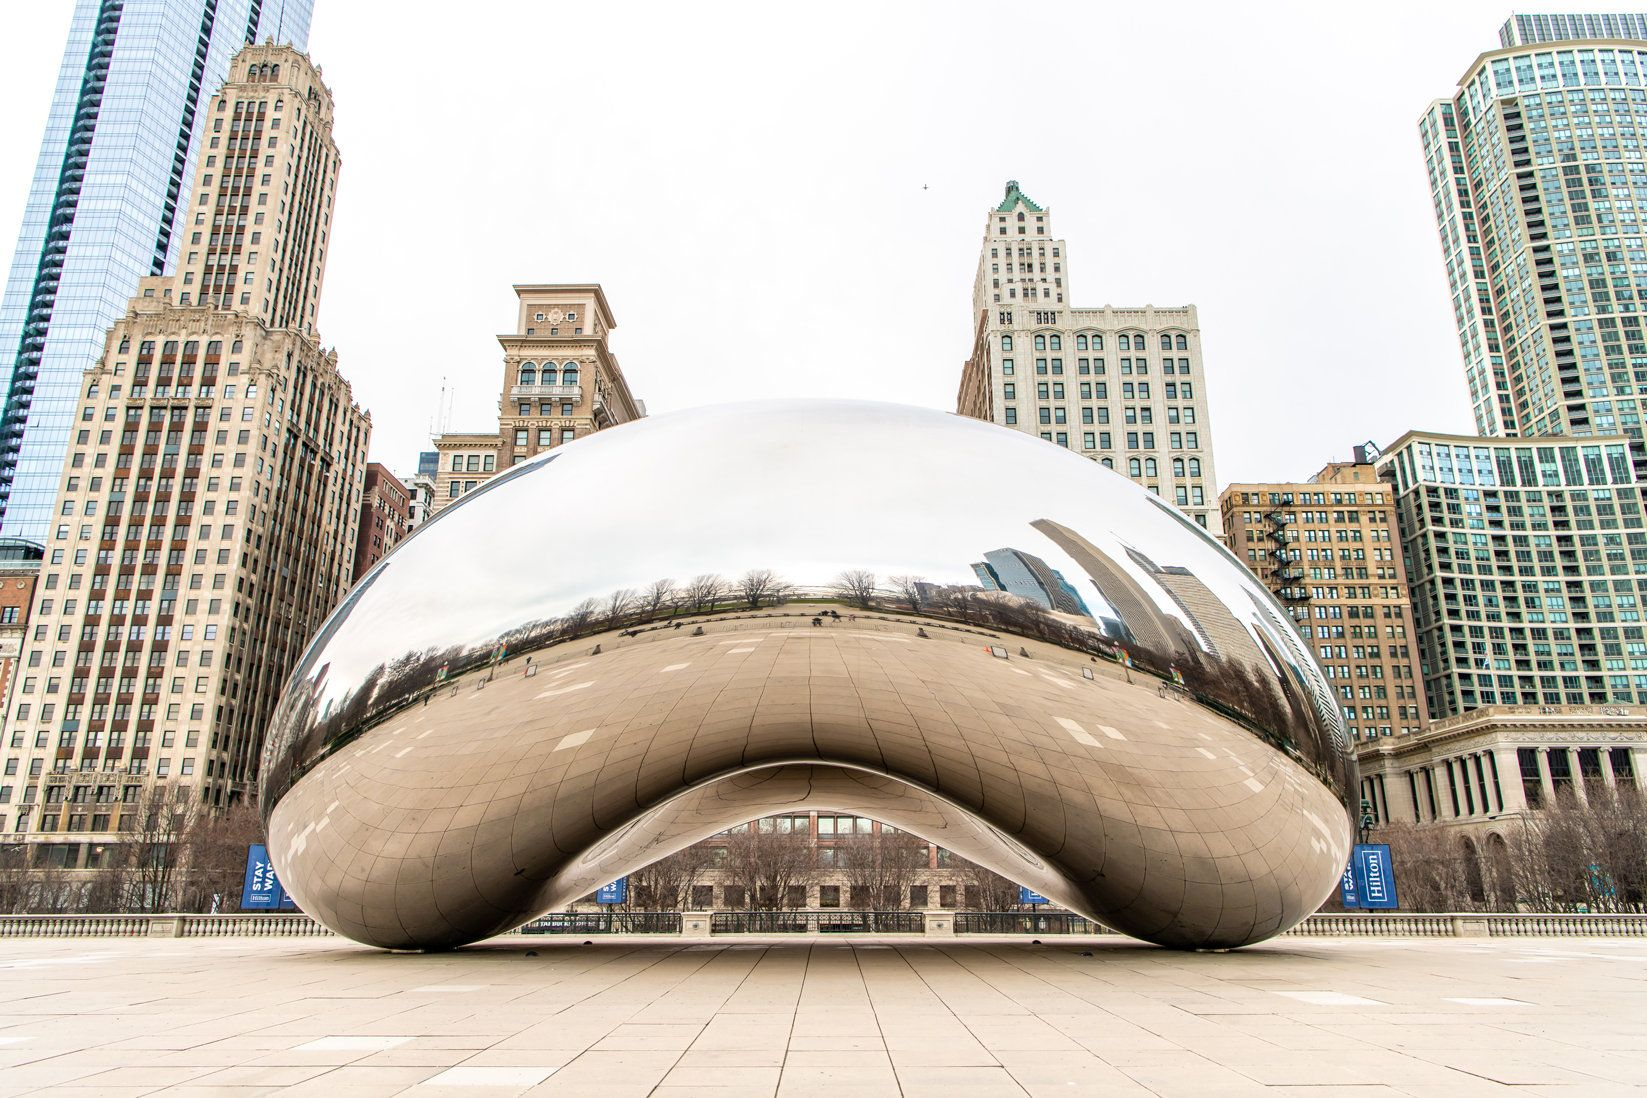 Chicago Bean (Cloud Gate) Downtown Millennium Park in The Loop. Two included: Color & Black and White. Fine Art Photo. Digital Download. #FineArt #FineArtPhotography #FineArtPrint #DigitalDownload #Photography #Photographer #TravelPhotography #Travel #Chicago #ChicagoLife #ChicagoBean #TheBean #TheBeanChicago #ChicagoFineArt #ChicagoPhotography #ChicagoPhotographer #ChicagoPhotos #DowntownChicago #ChicagoLoop #LoopChicago